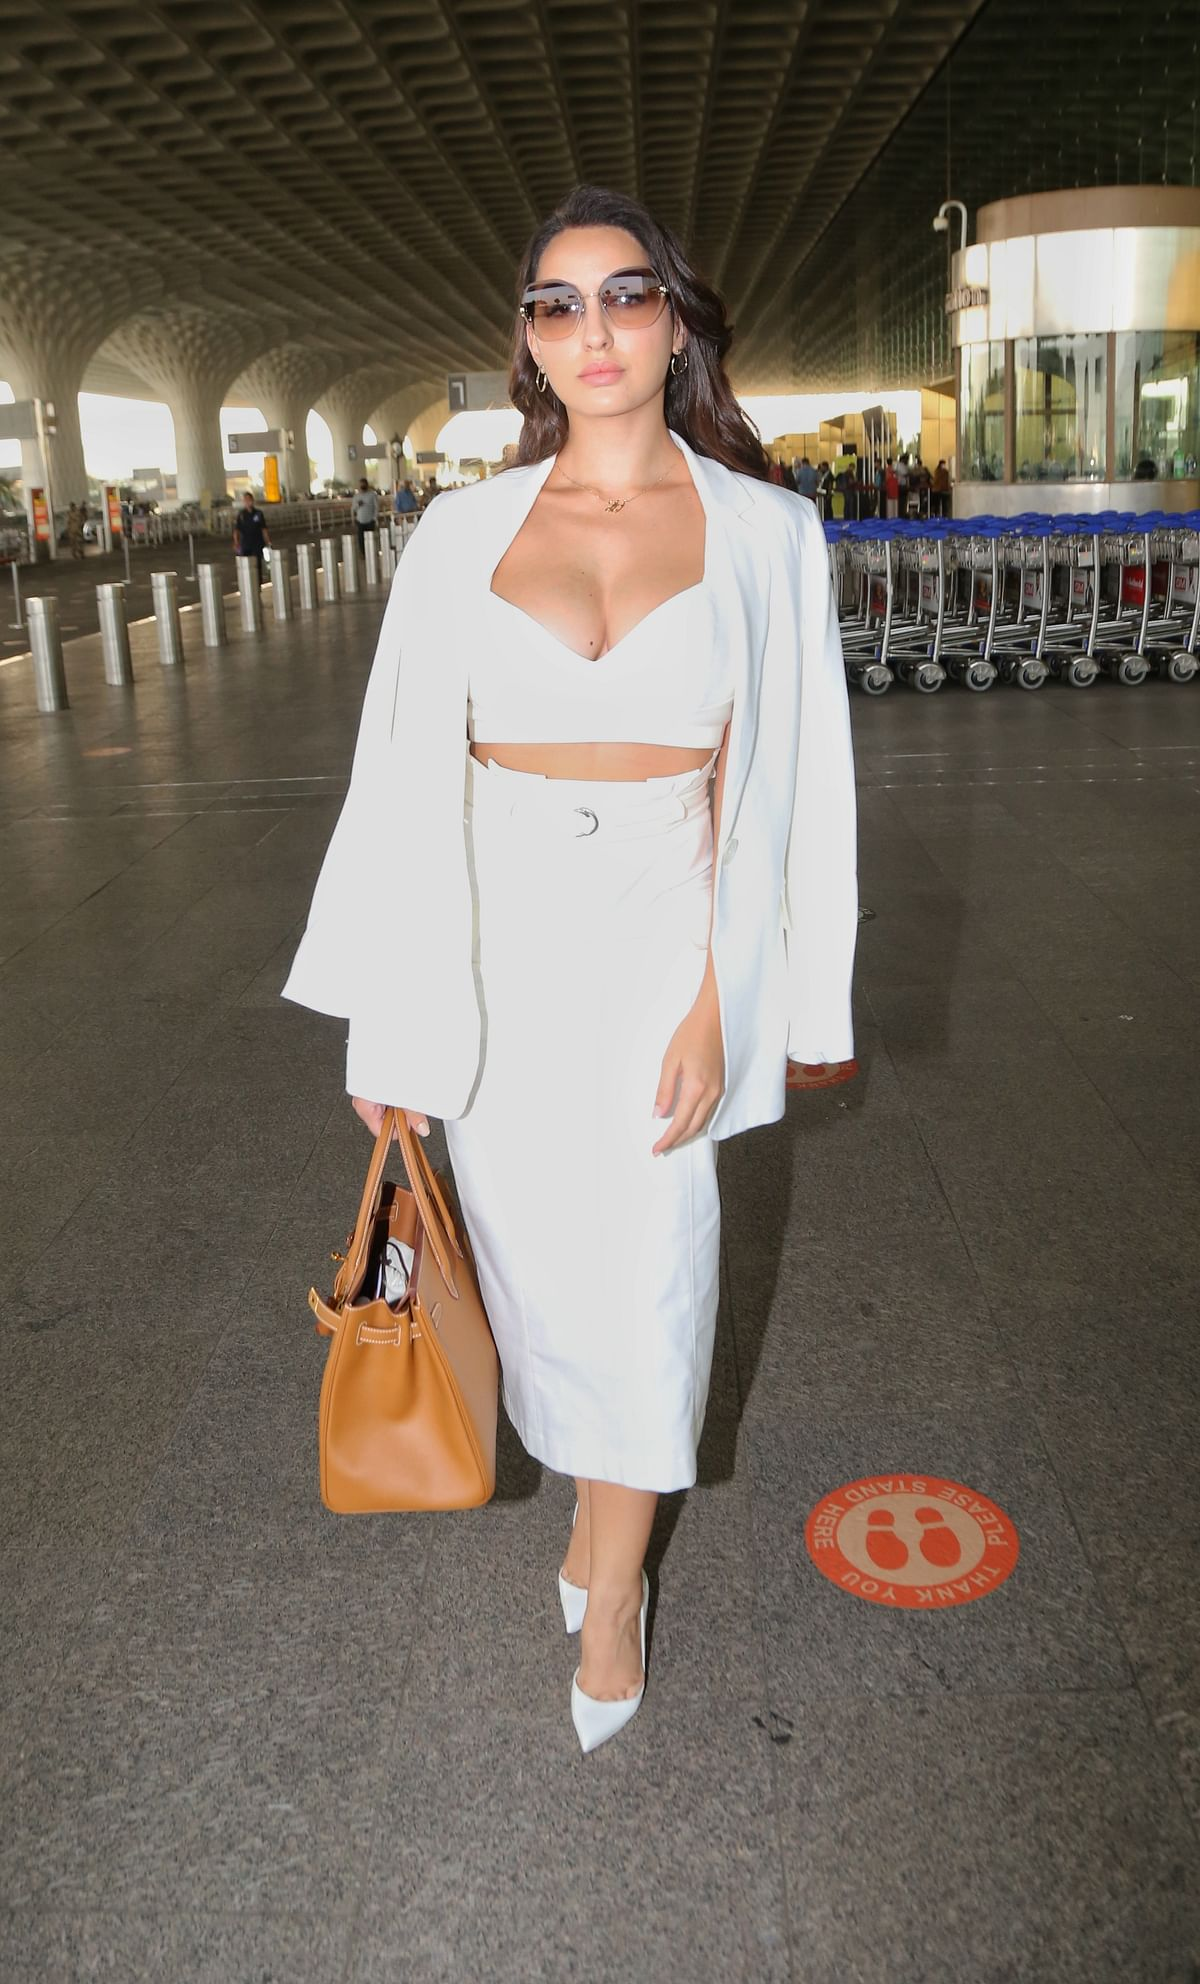 Nora Fatehi turns heads at Mumbai airport in a white ensemble with a plunging neckline